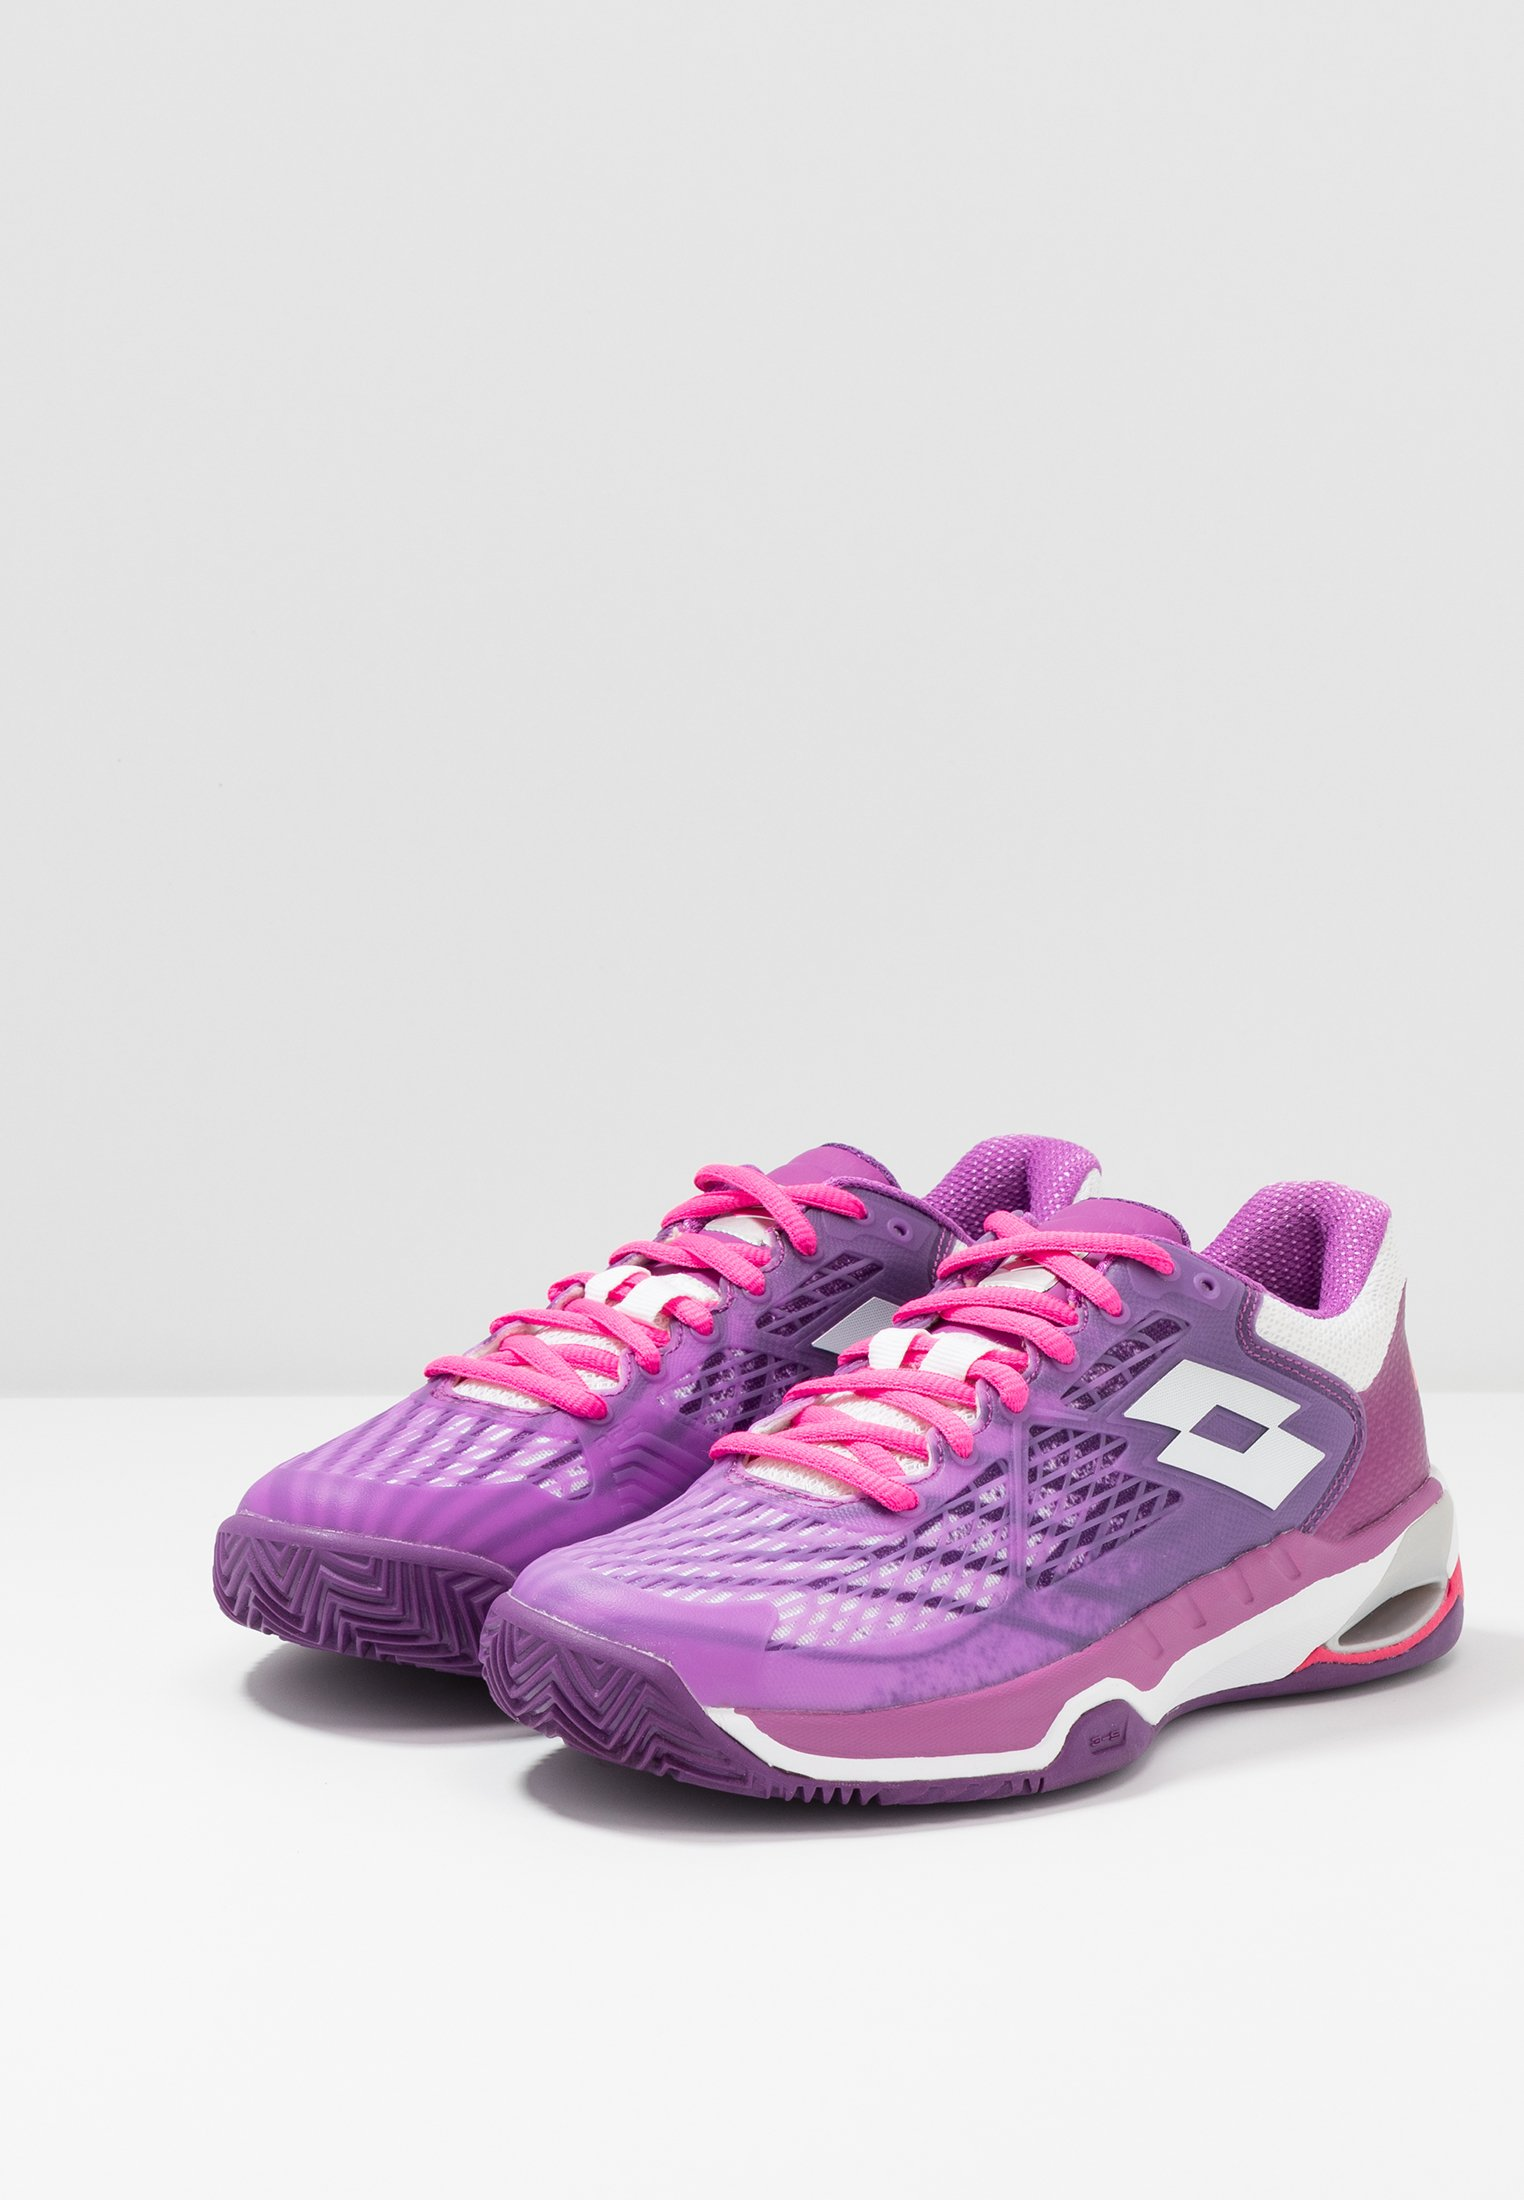 Battue ClyChaussures De Pour Pink Purple funky Tennis Mirage battueerre Willow Lotto 100 all White Terre 0N8wOnvm